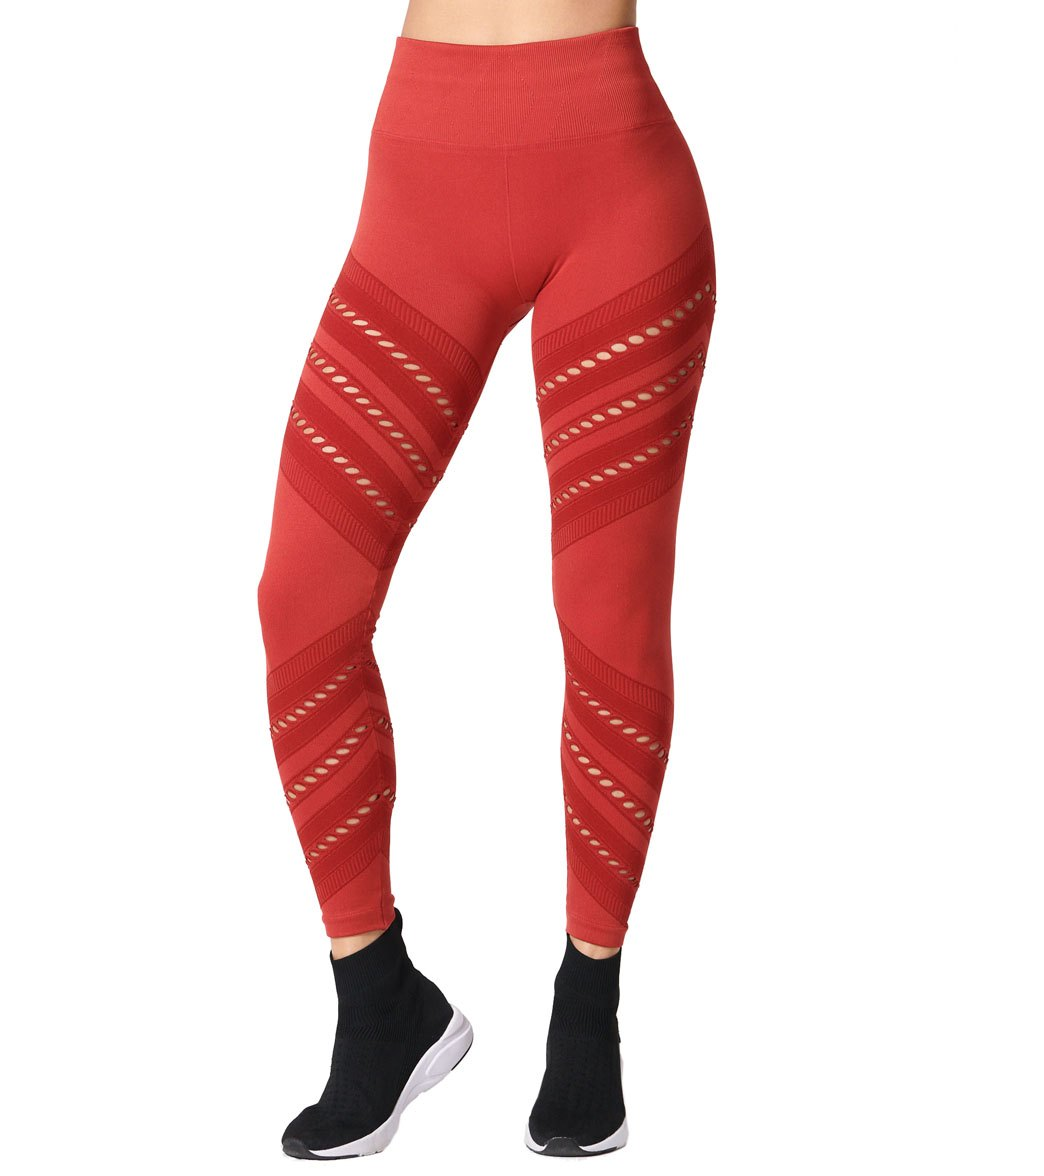 NUX Seamless High Life Yoga Leggings - Lover Spandex